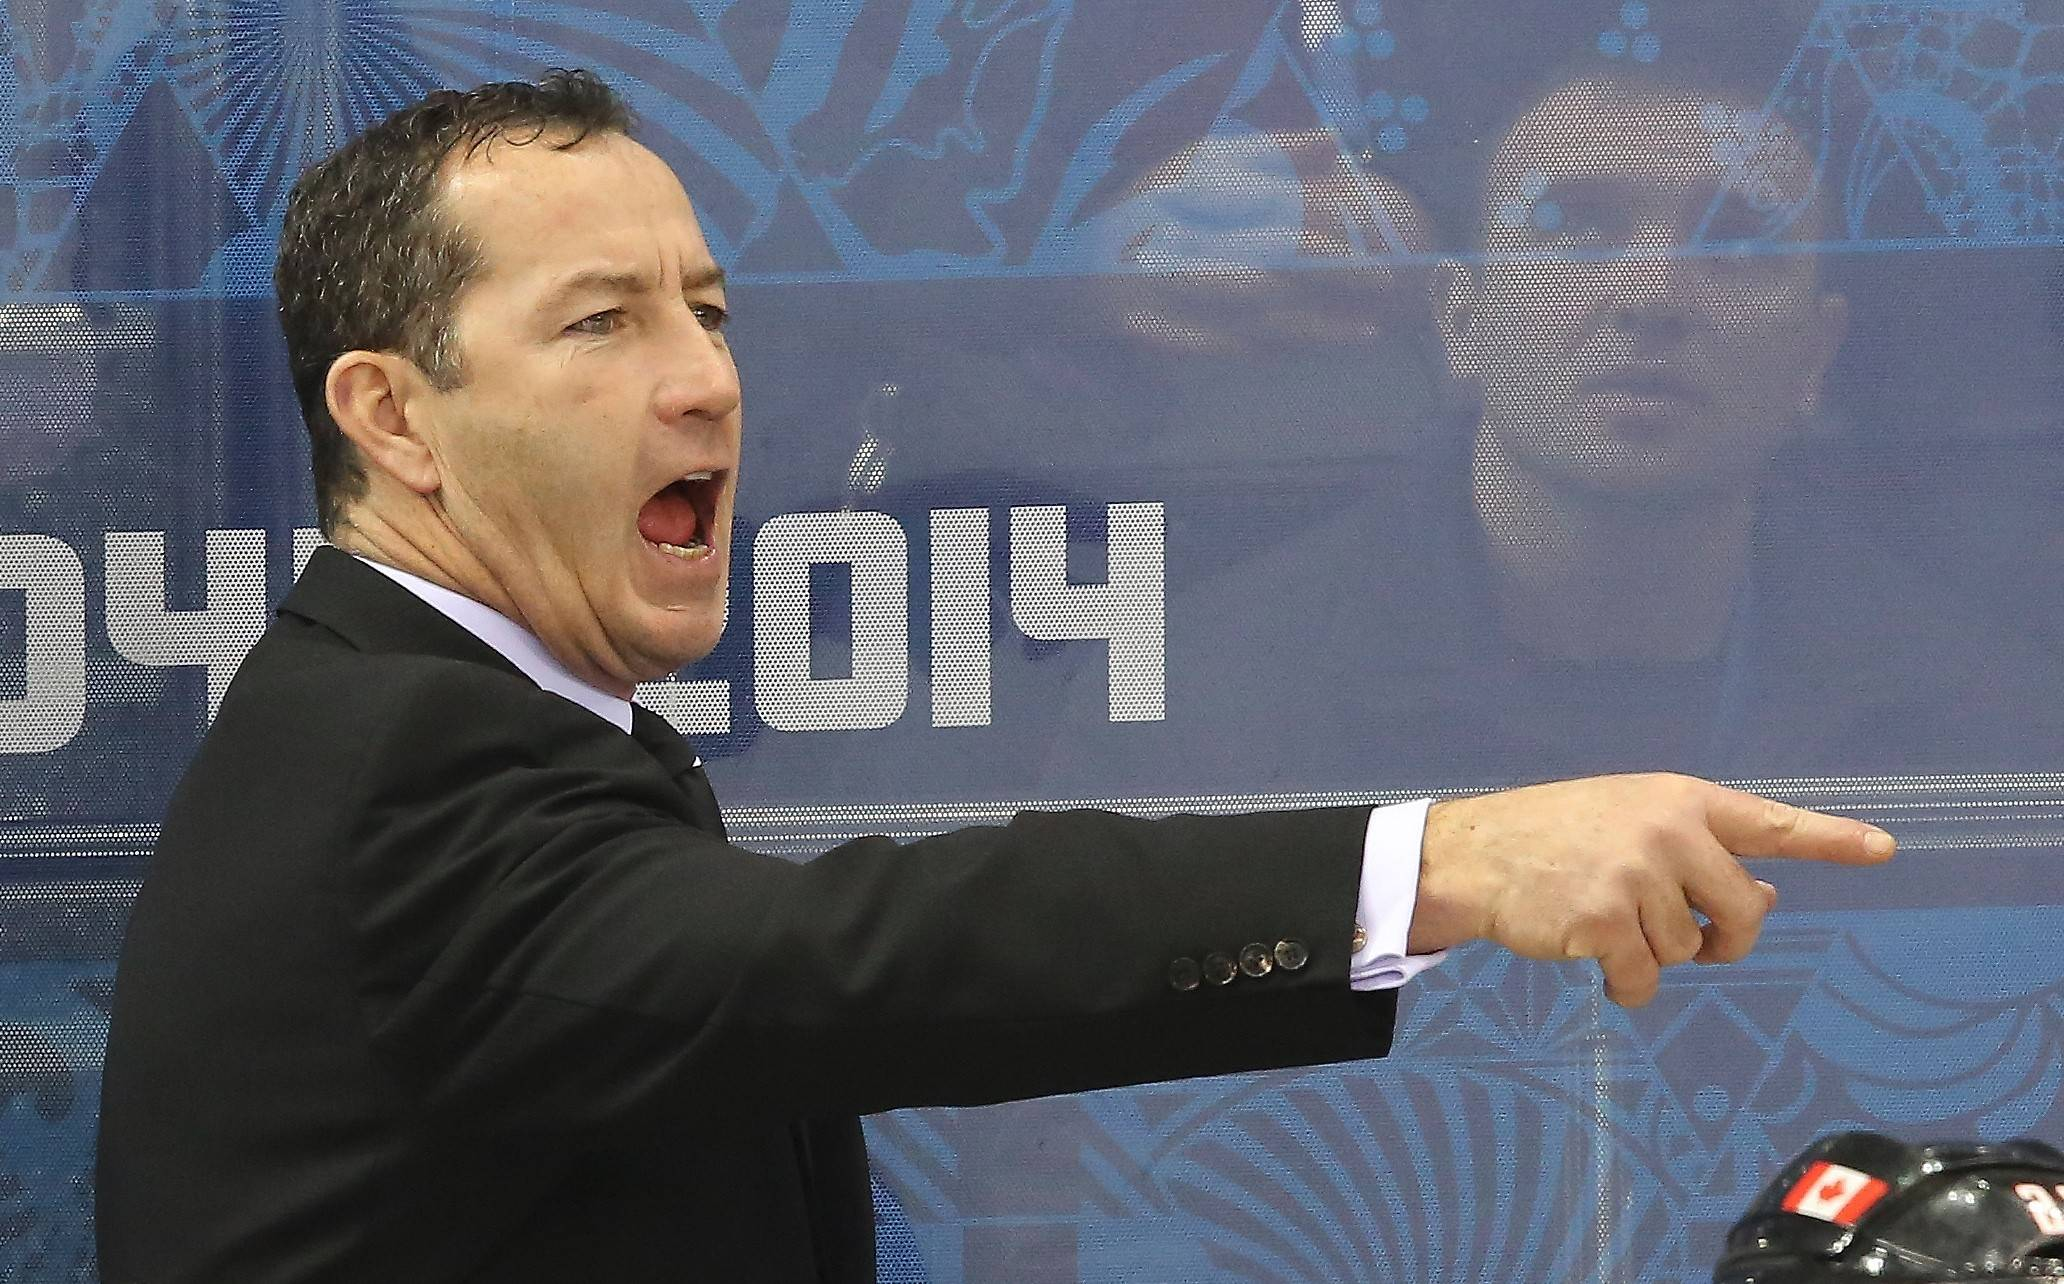 New Blackhawks assistant coach Kevin Dineen led the Canadian women's national team to a gold medal at the 2014 Winter Olympics in Sochi, Russia.